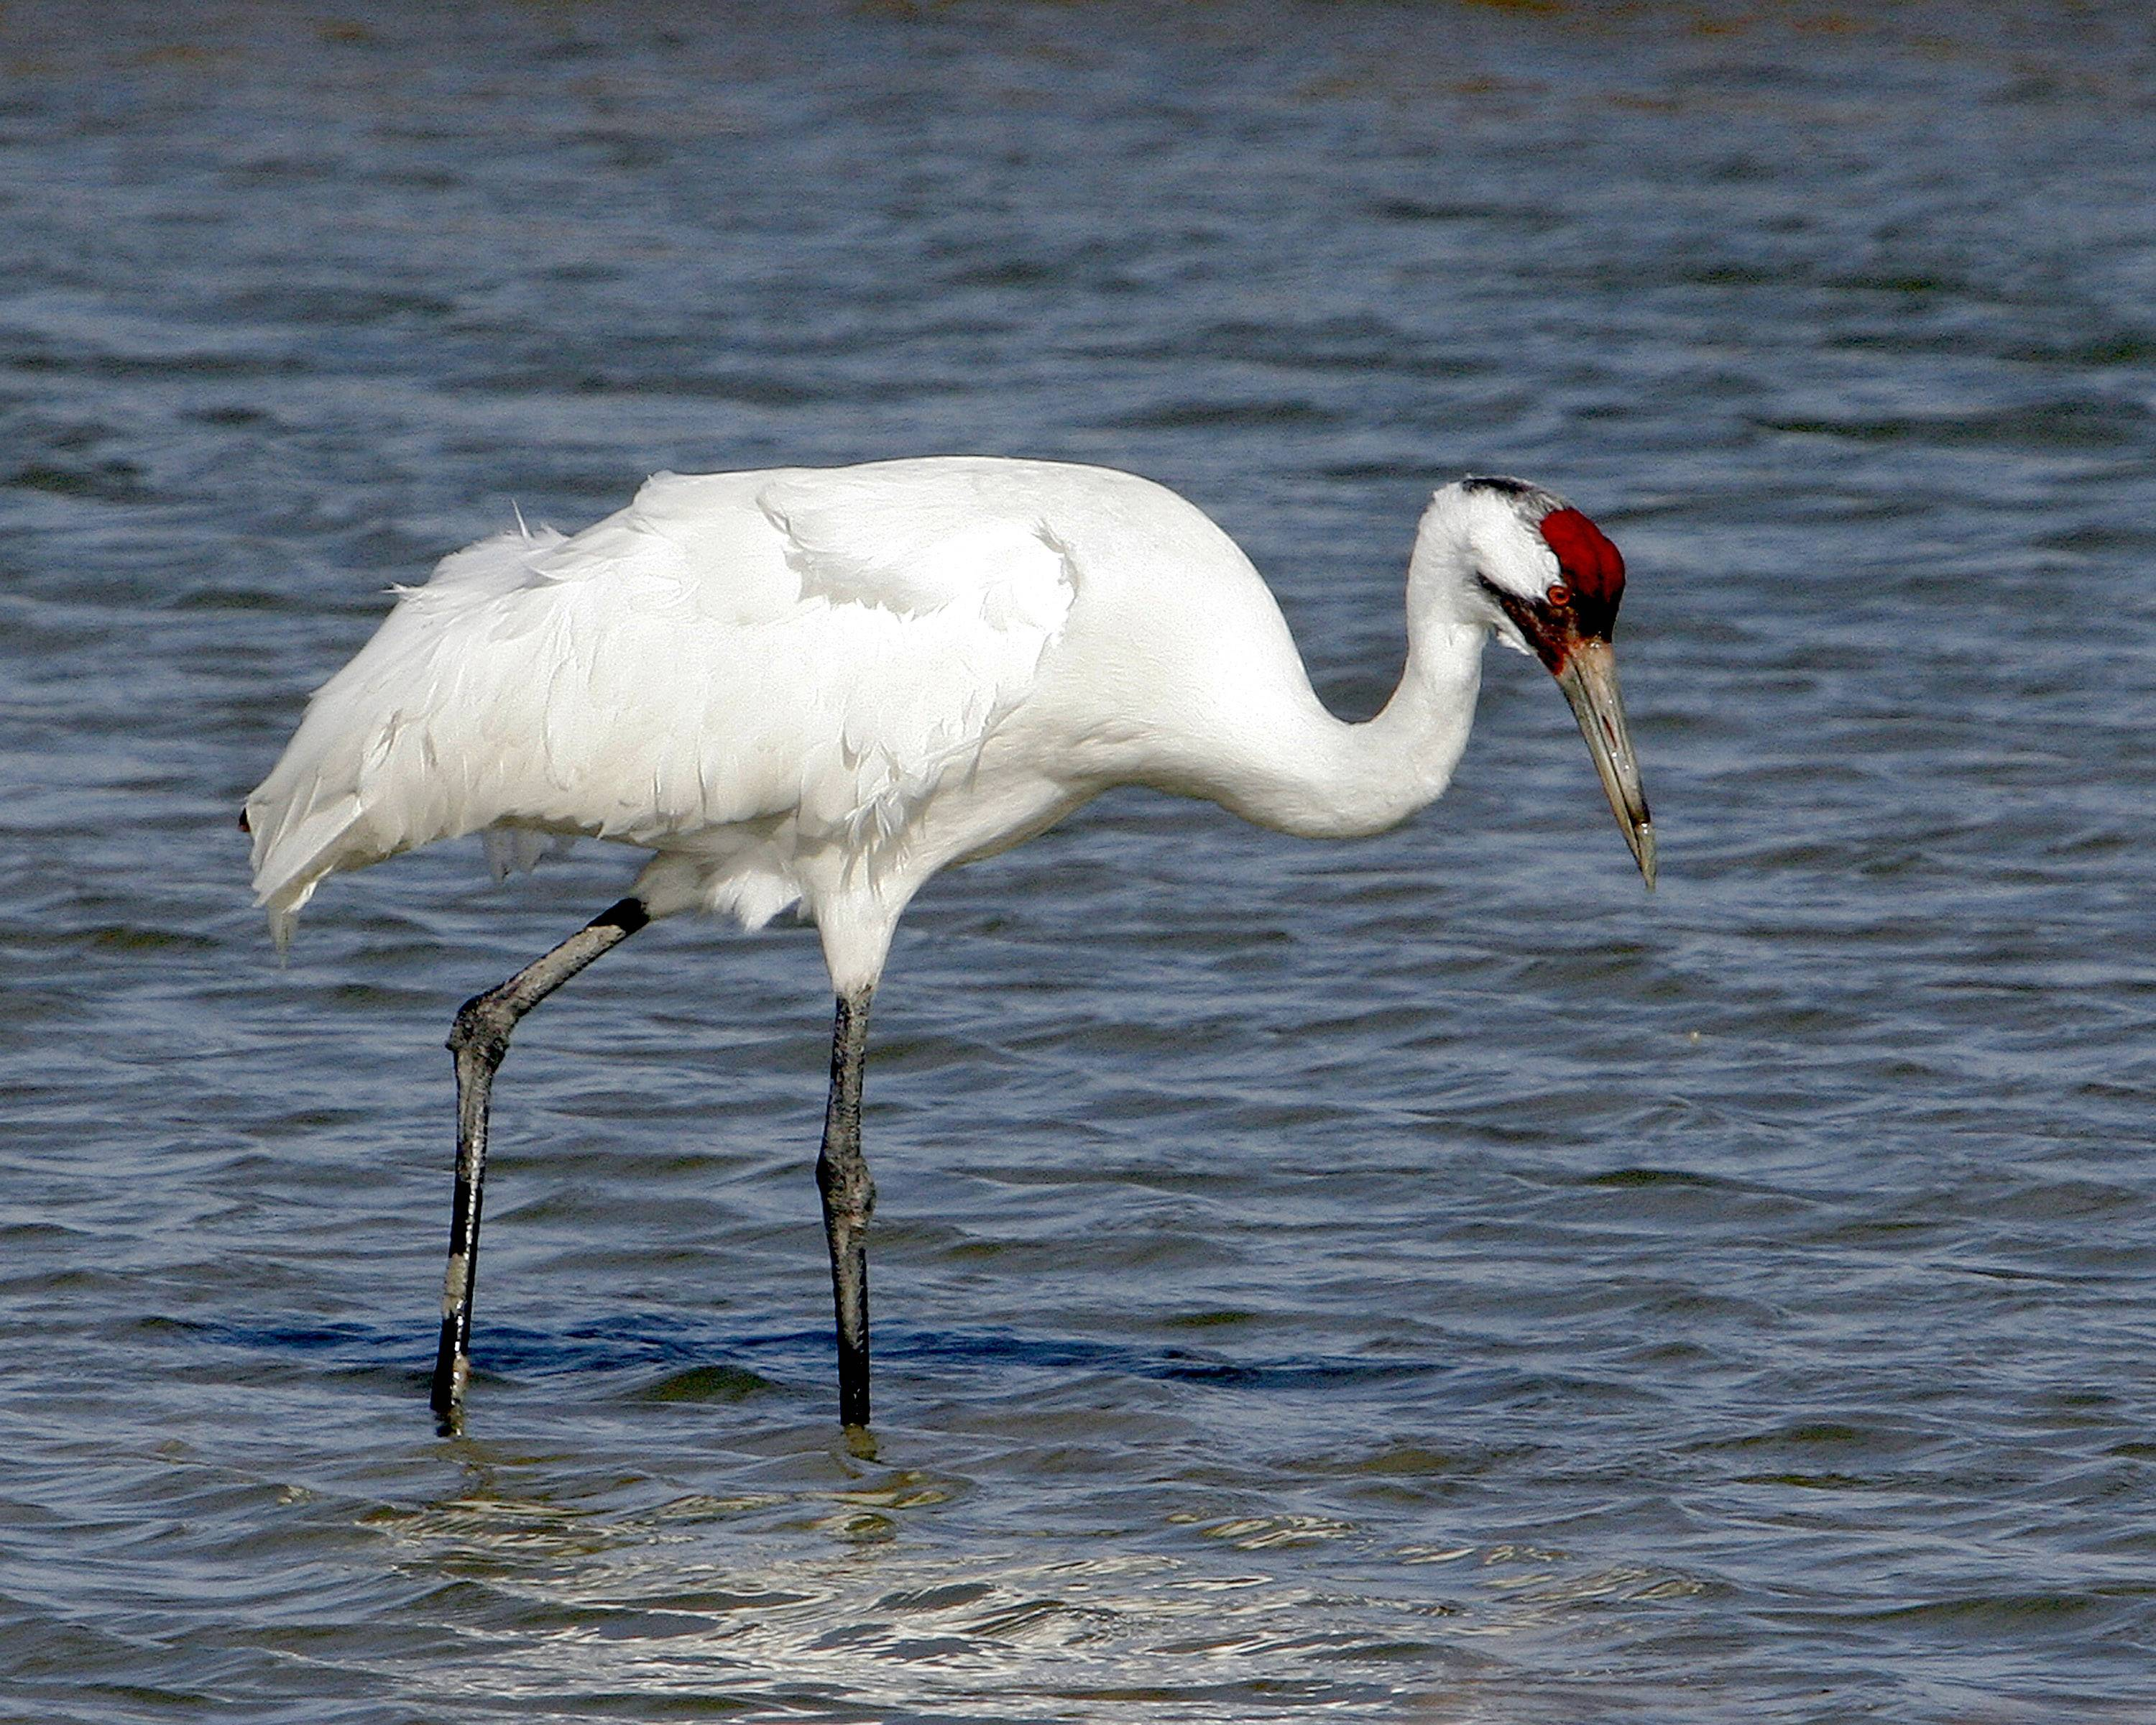 Whooping cranes once were on the verge of extinction with just eight birds. Now the population is around 500.